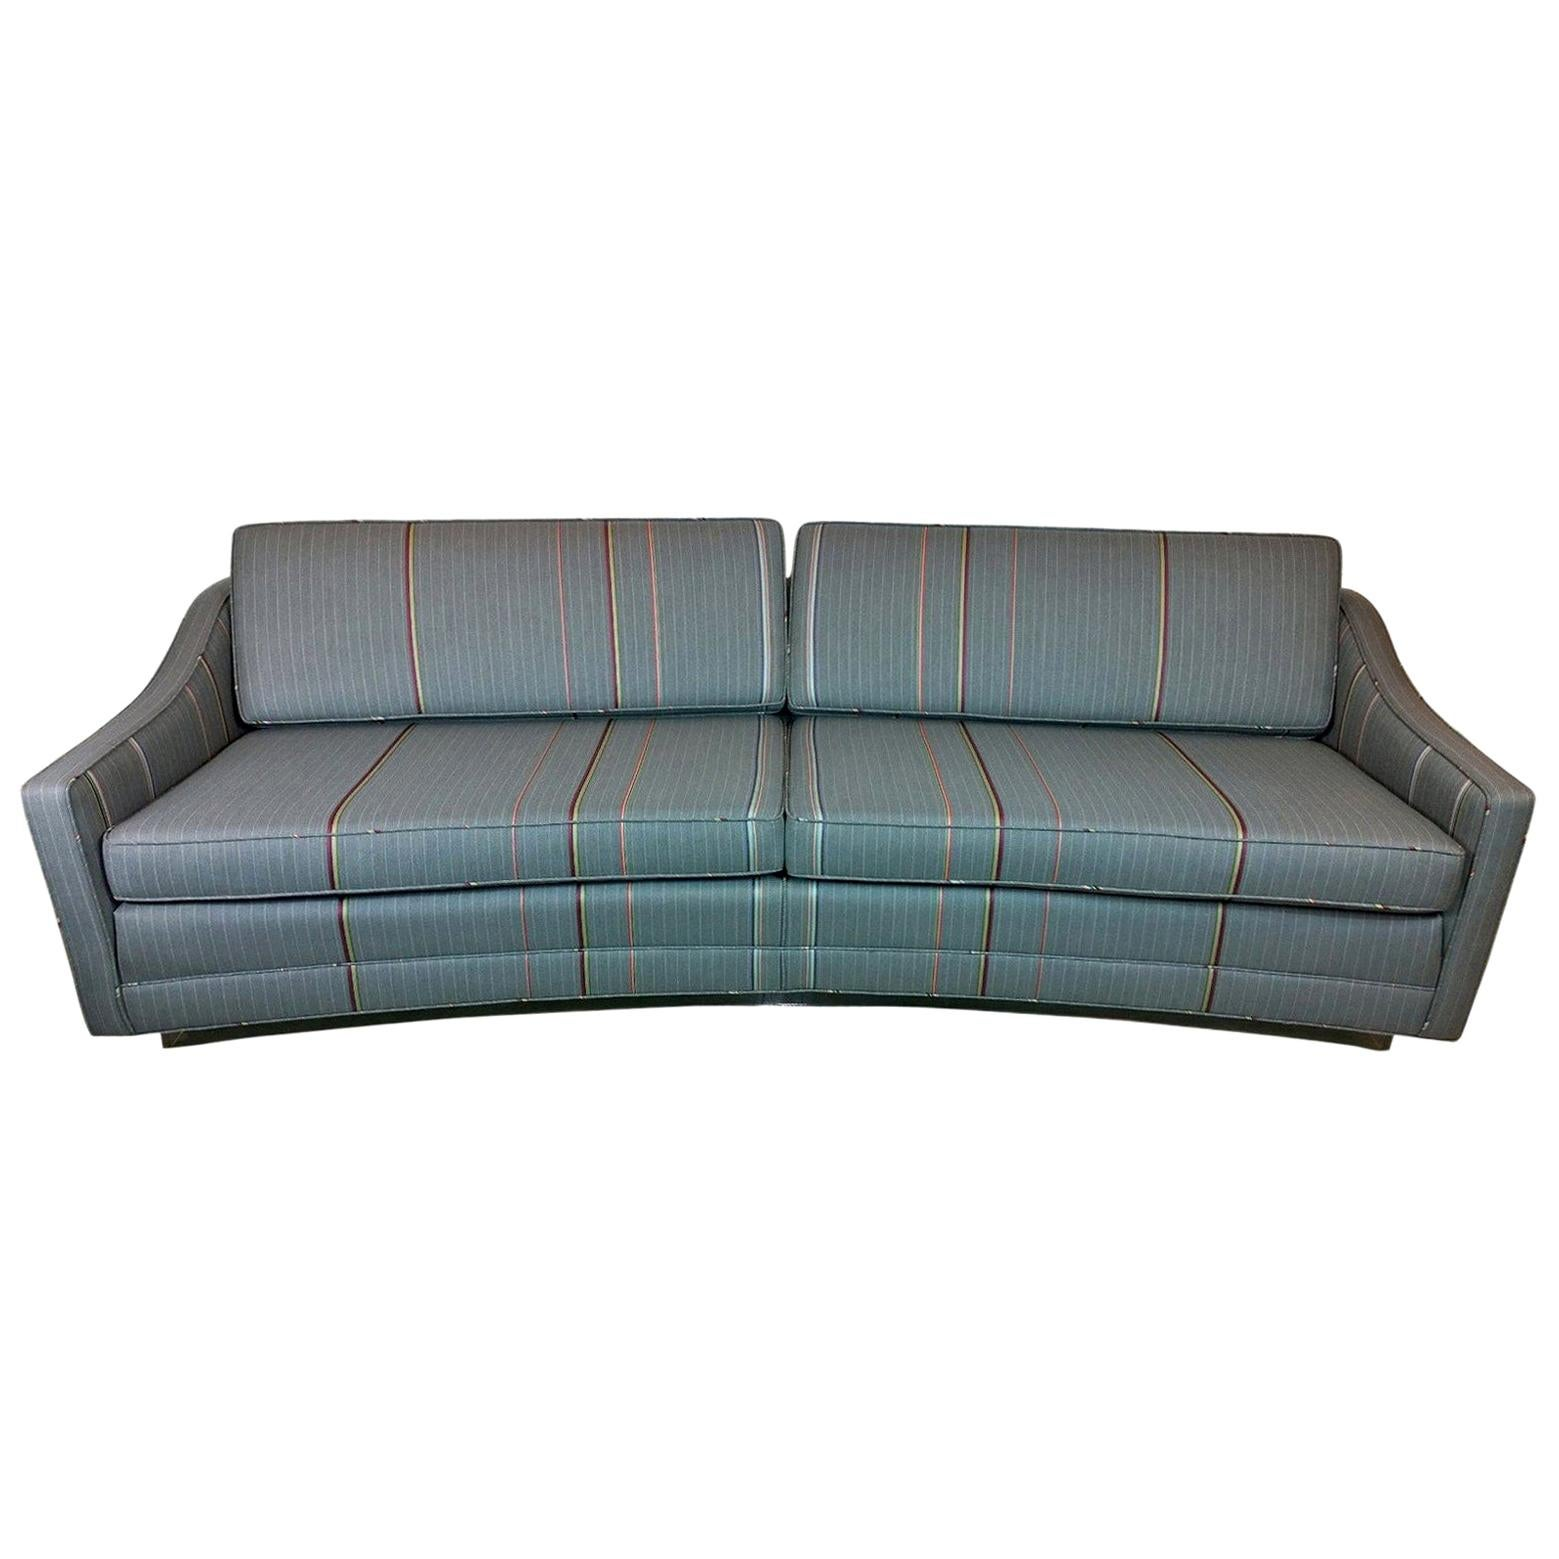 Lucite Sofas 30 For Sale At 1stdibs